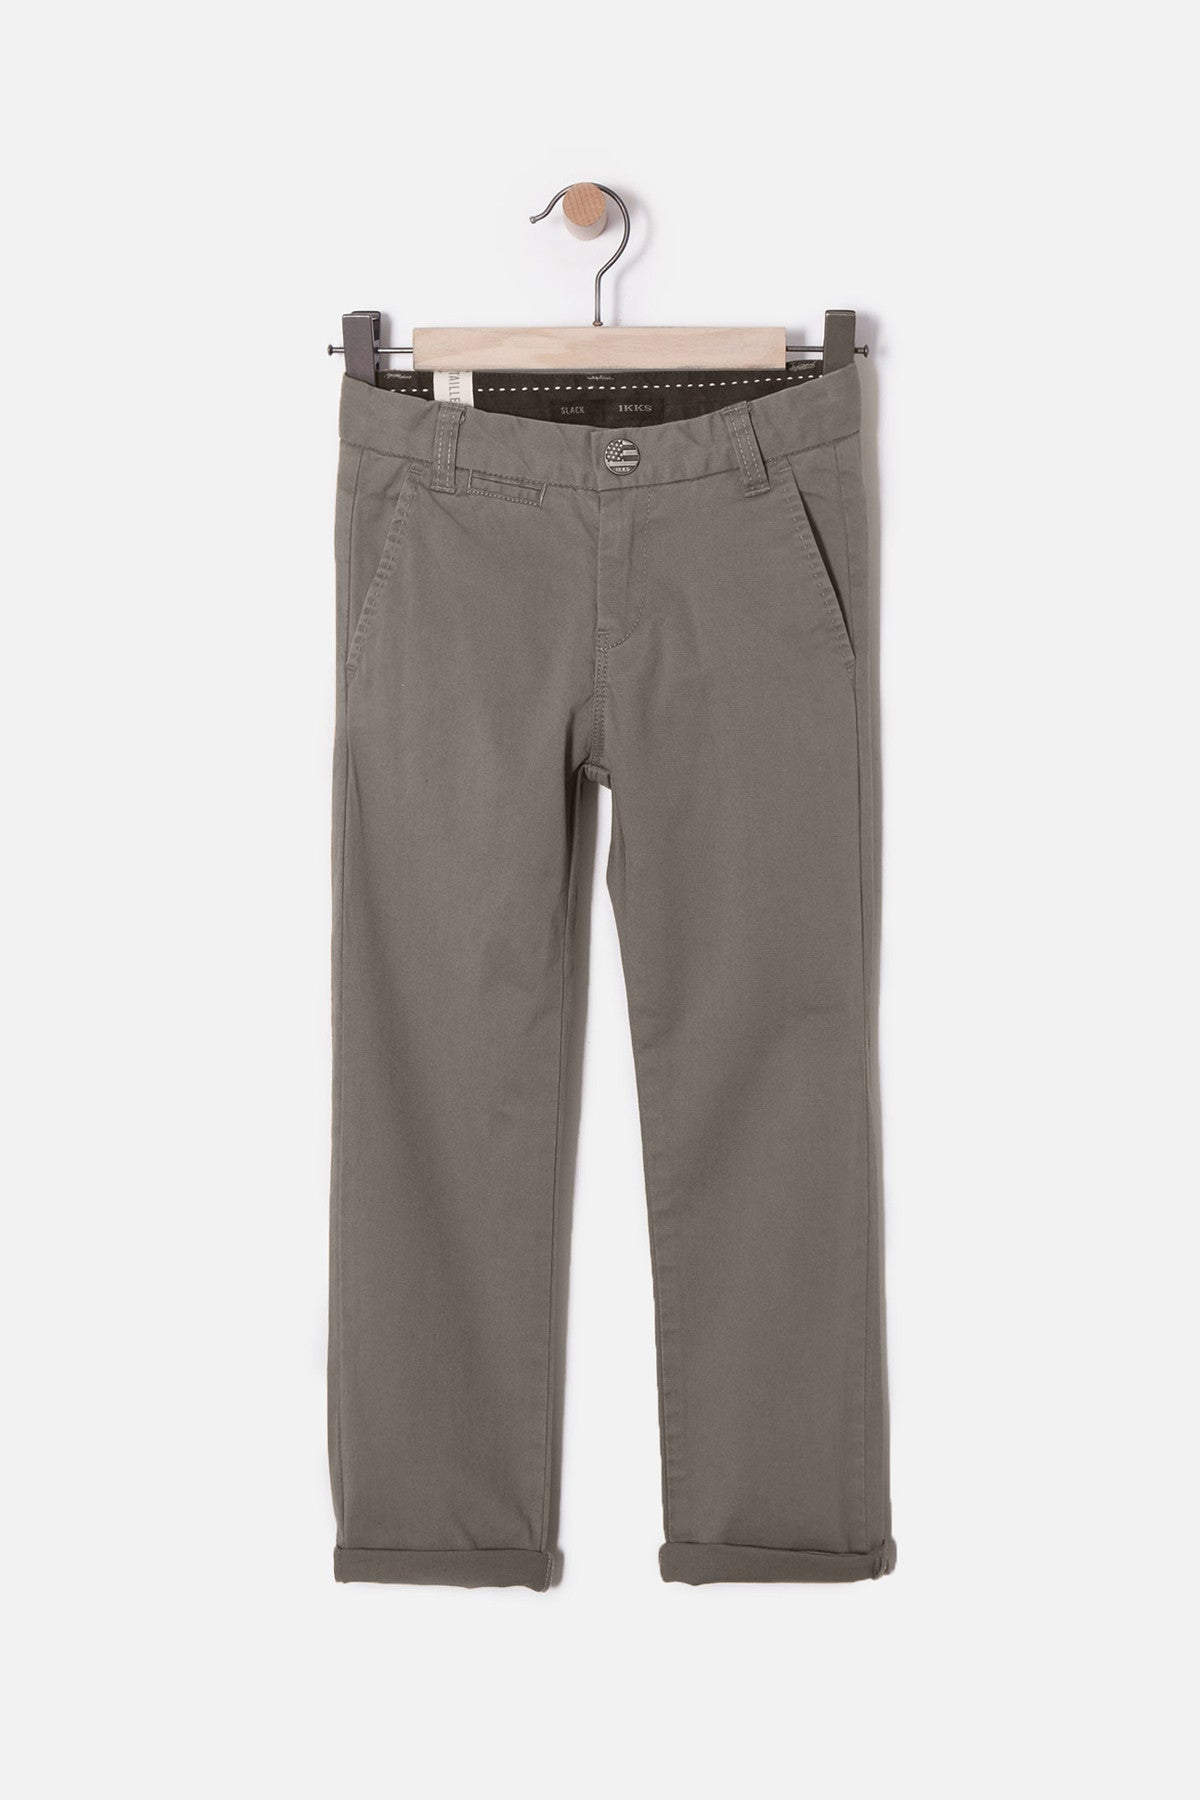 IKKS Brushed Cotton Boys Chinos